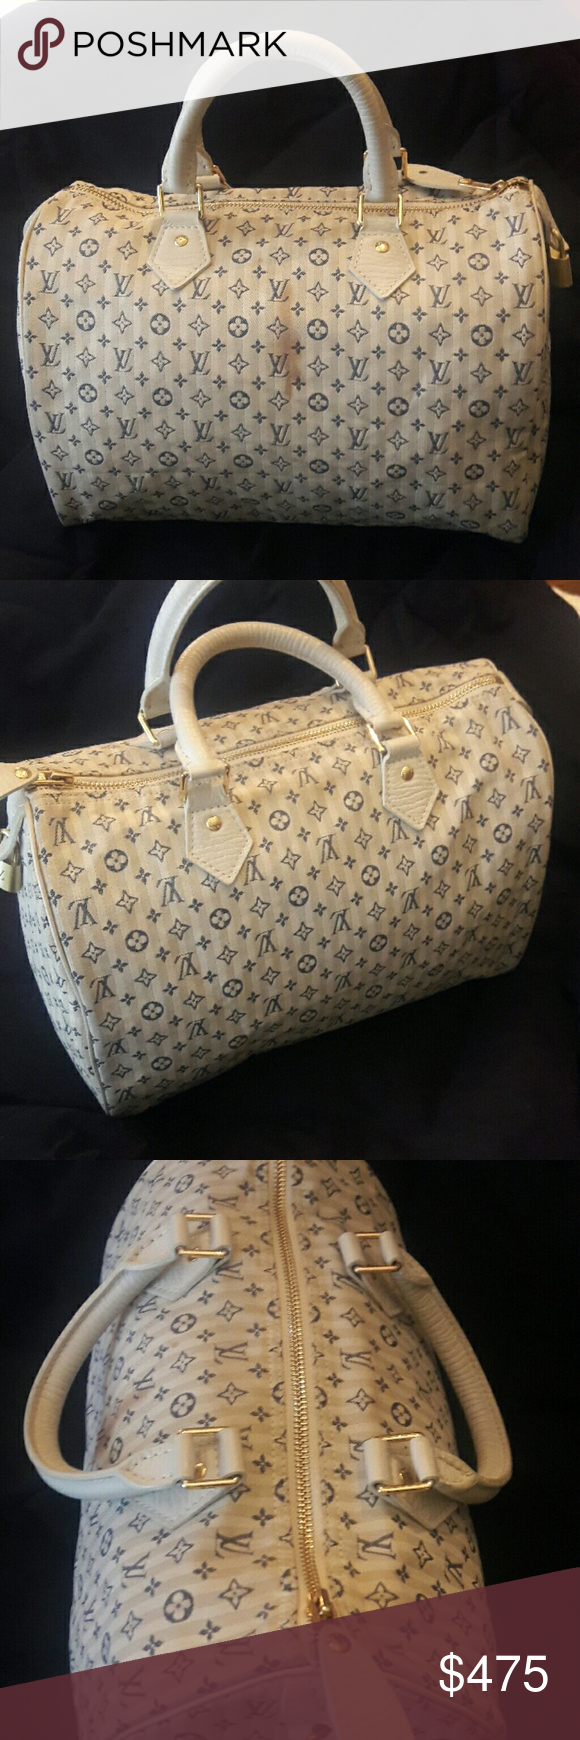 Louis Vuitton Speedy 30 Authentic in Pre-owned Condition has a  stain on the front checkout all pictures I haven't tried to clean. Light blue on white monogram cowhide leather handles. Comes with lock, keys and lv charm. Sorry no dust bag. Louis Vuitton Bags Satchels